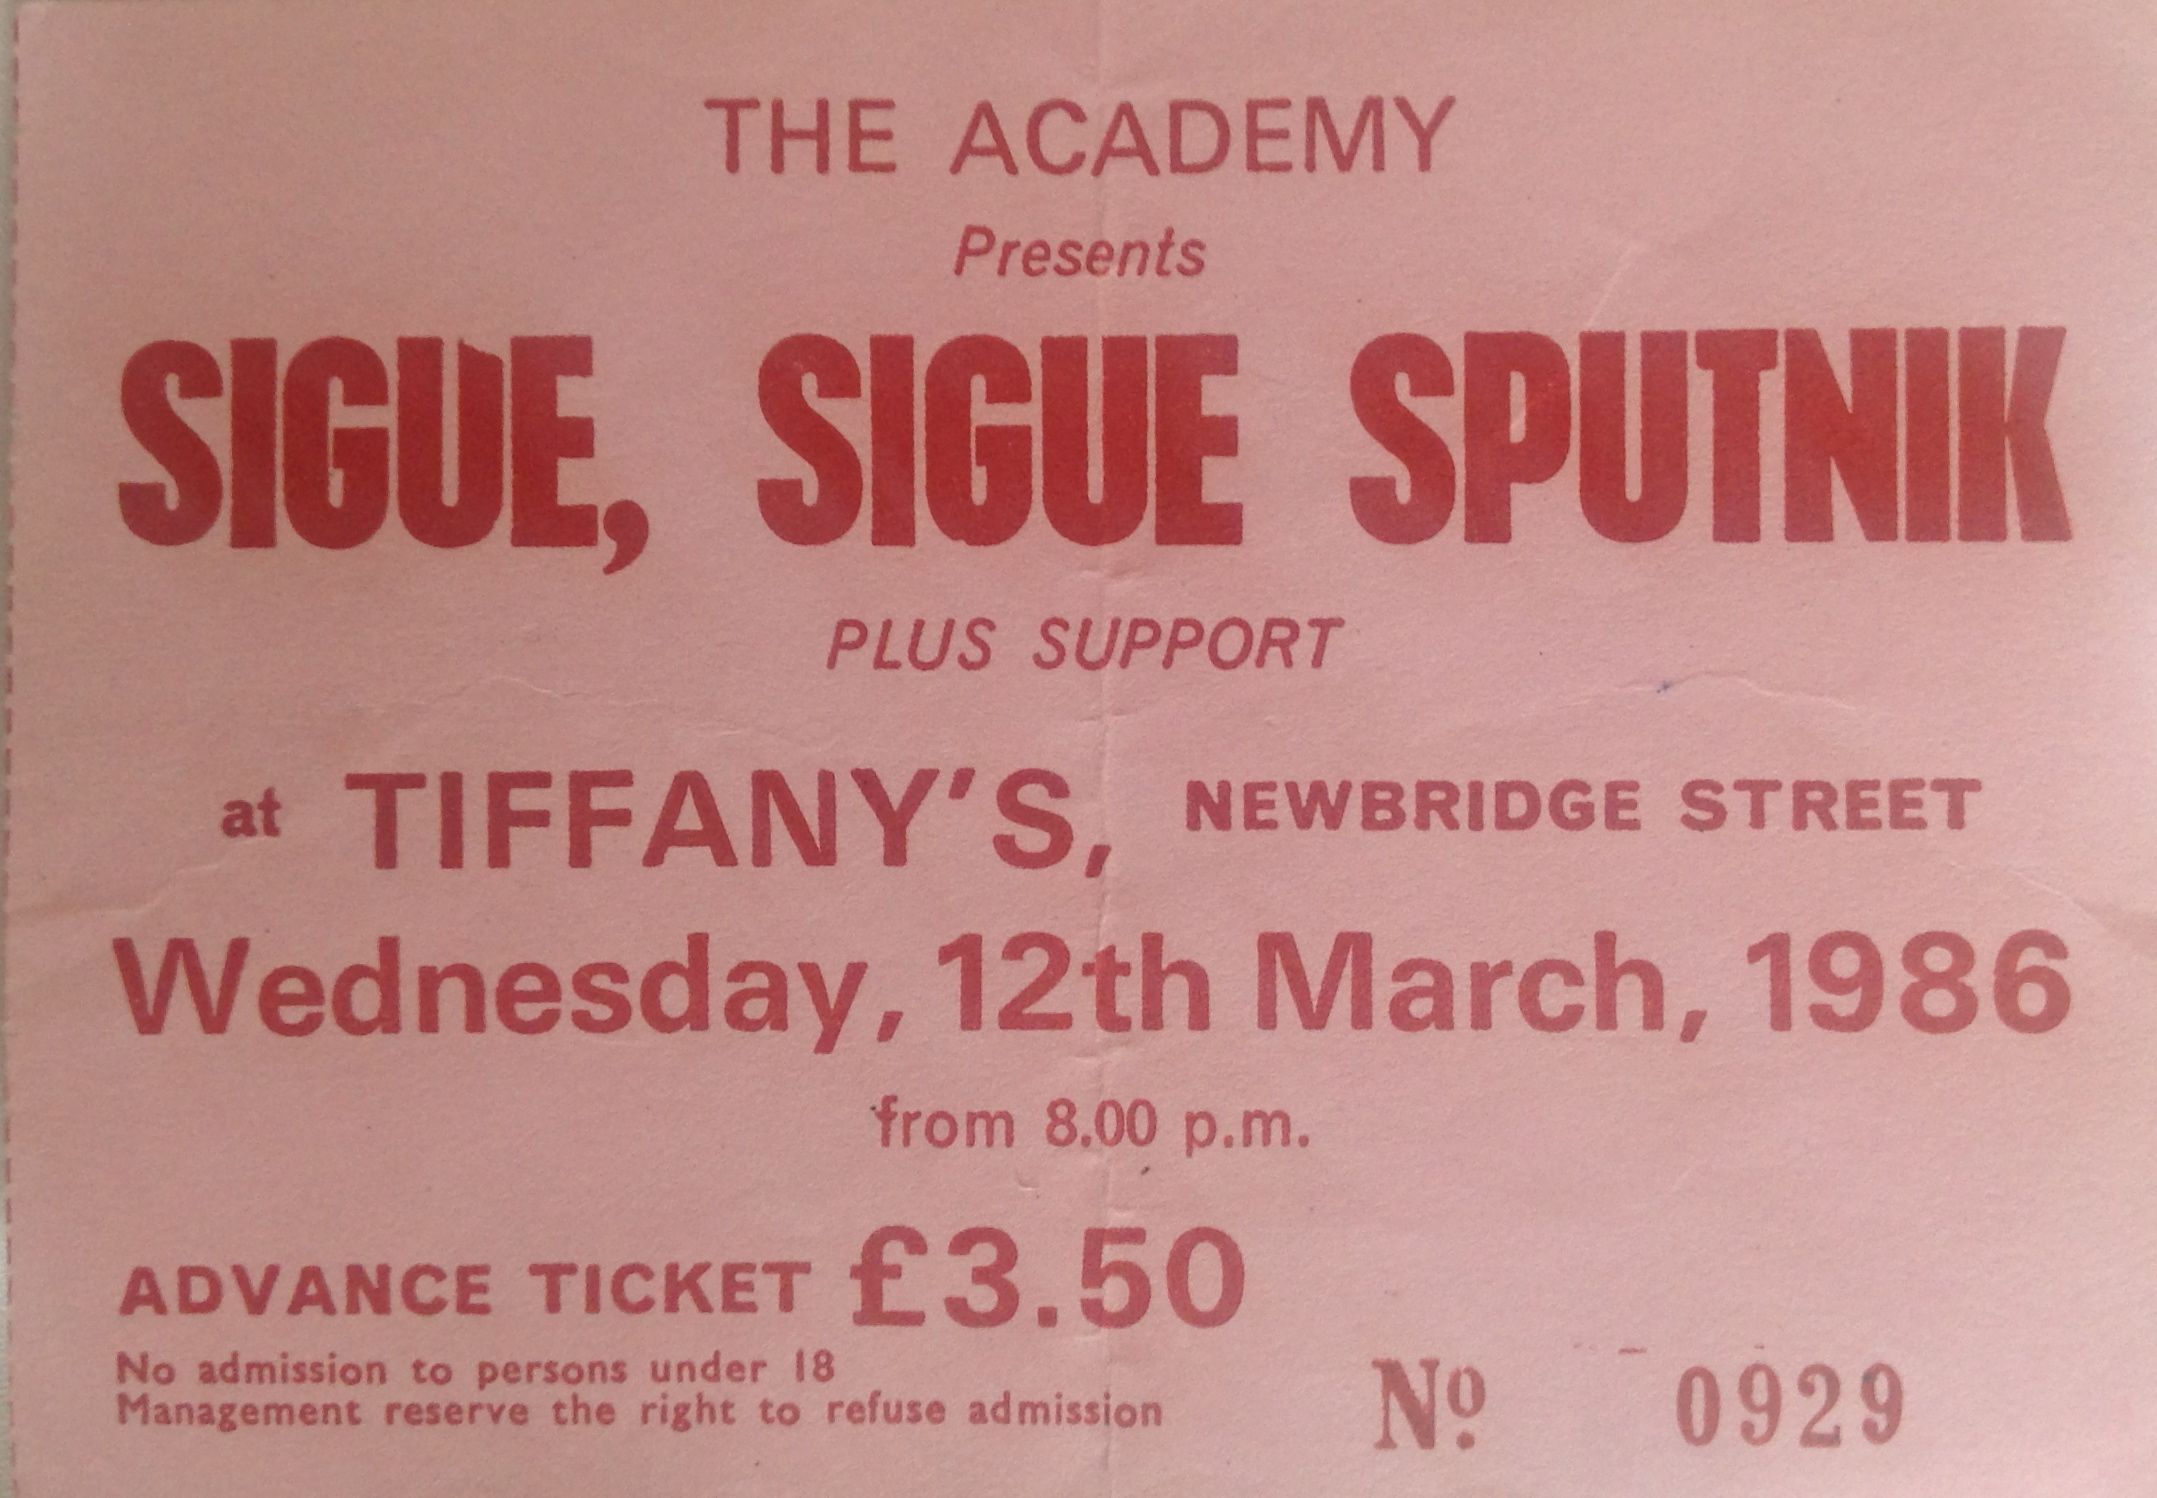 Sigue Sigue Sputnik Newcastle Mayfair 12th March 1986